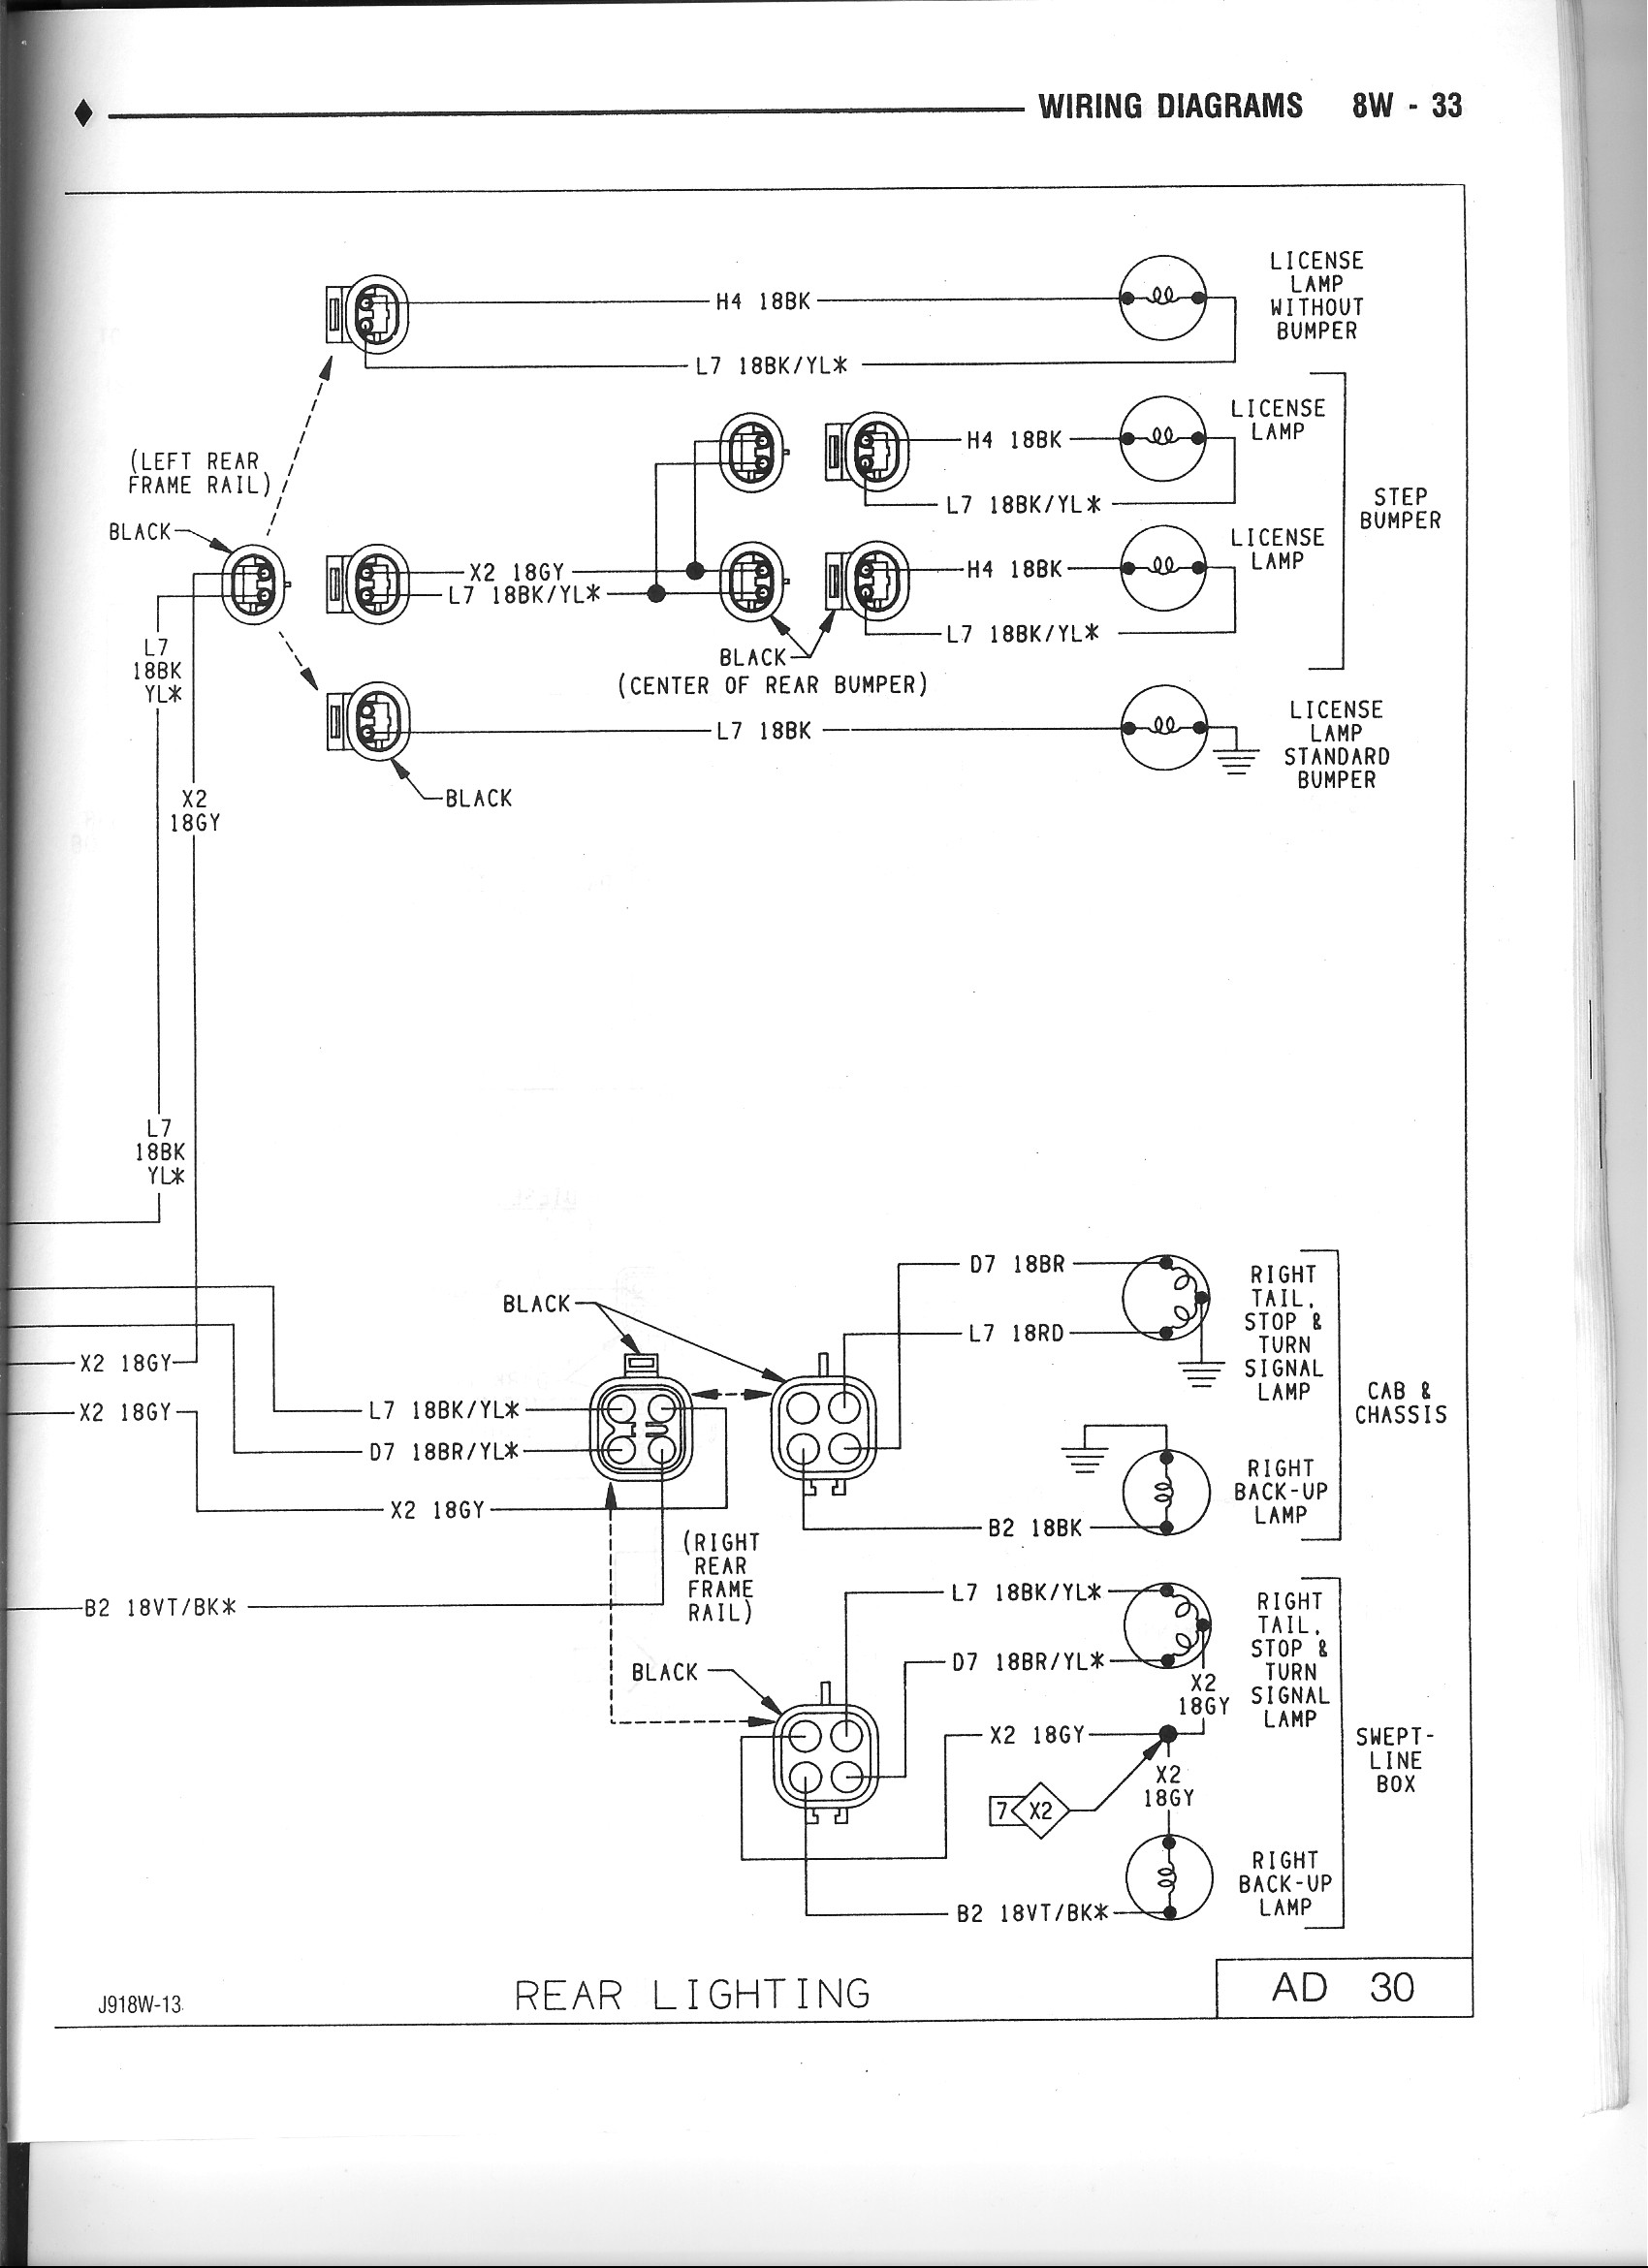 1992 Dodge D250 Wiring Diagram Starting Know About Ram 3500 Harness Diesel Truck Resource Forums Cummins Stereo